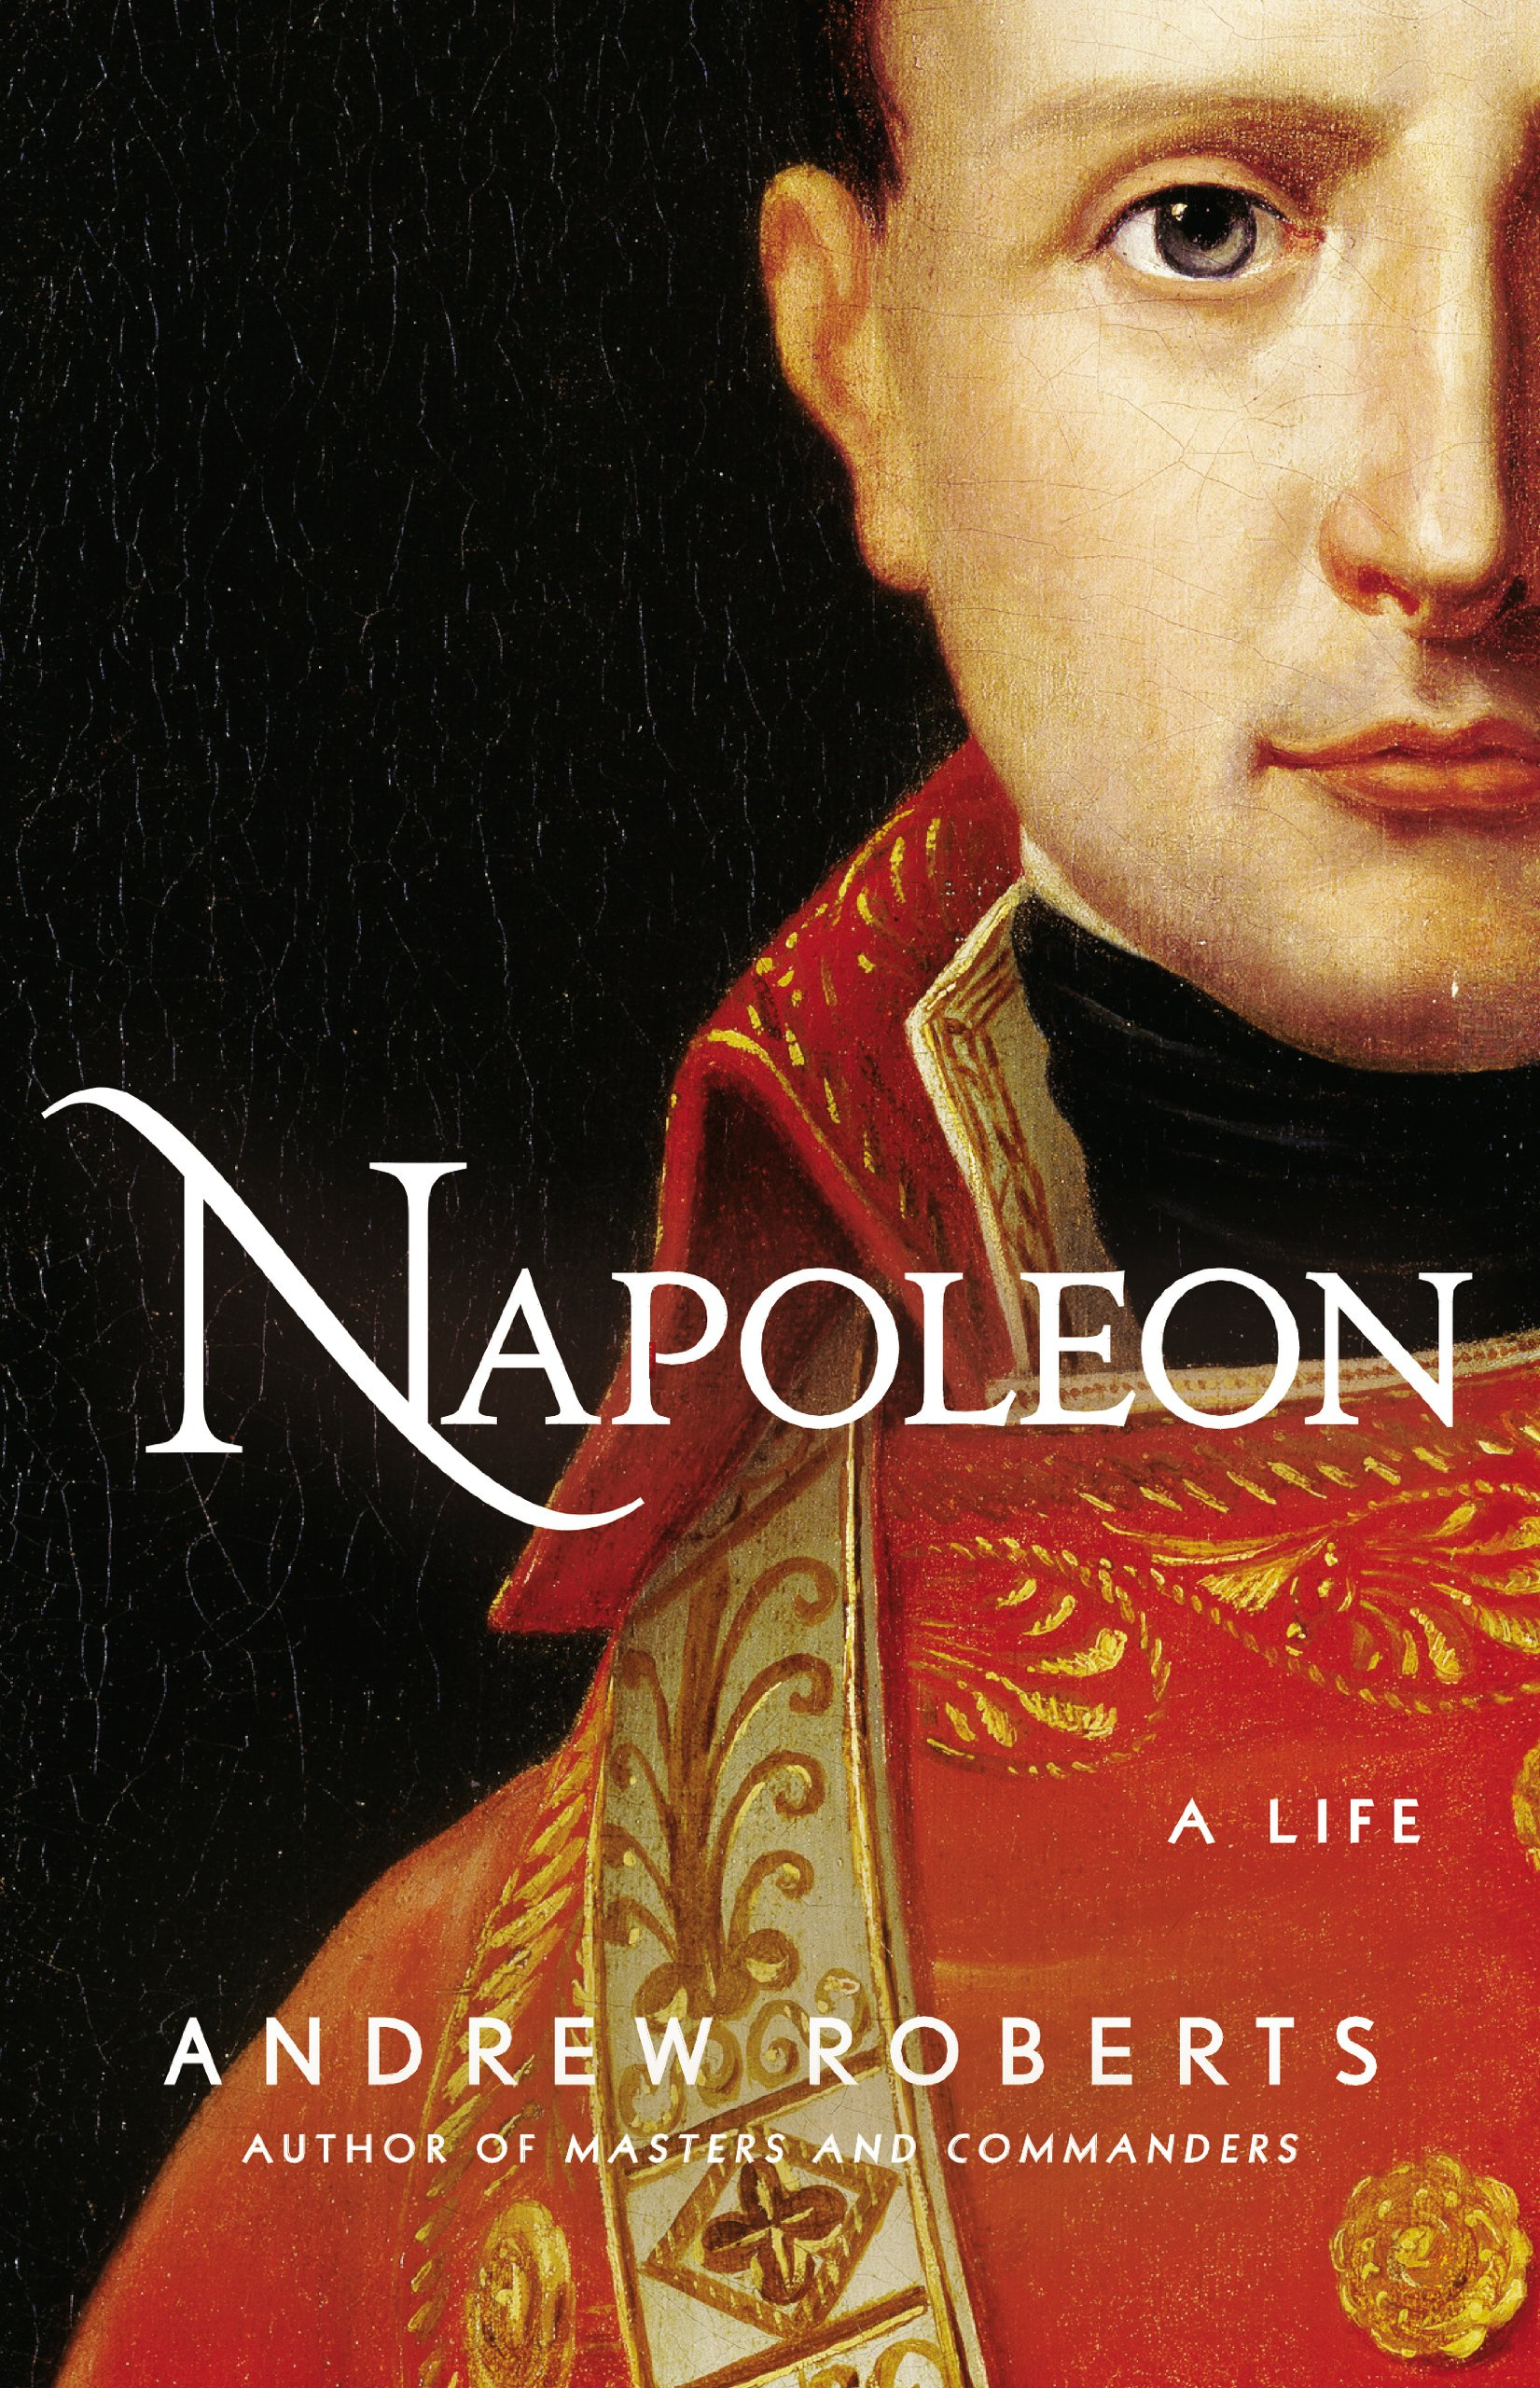 carnage and culture: Book Review: 'Napoleon: A Life' by Andrew Roberts